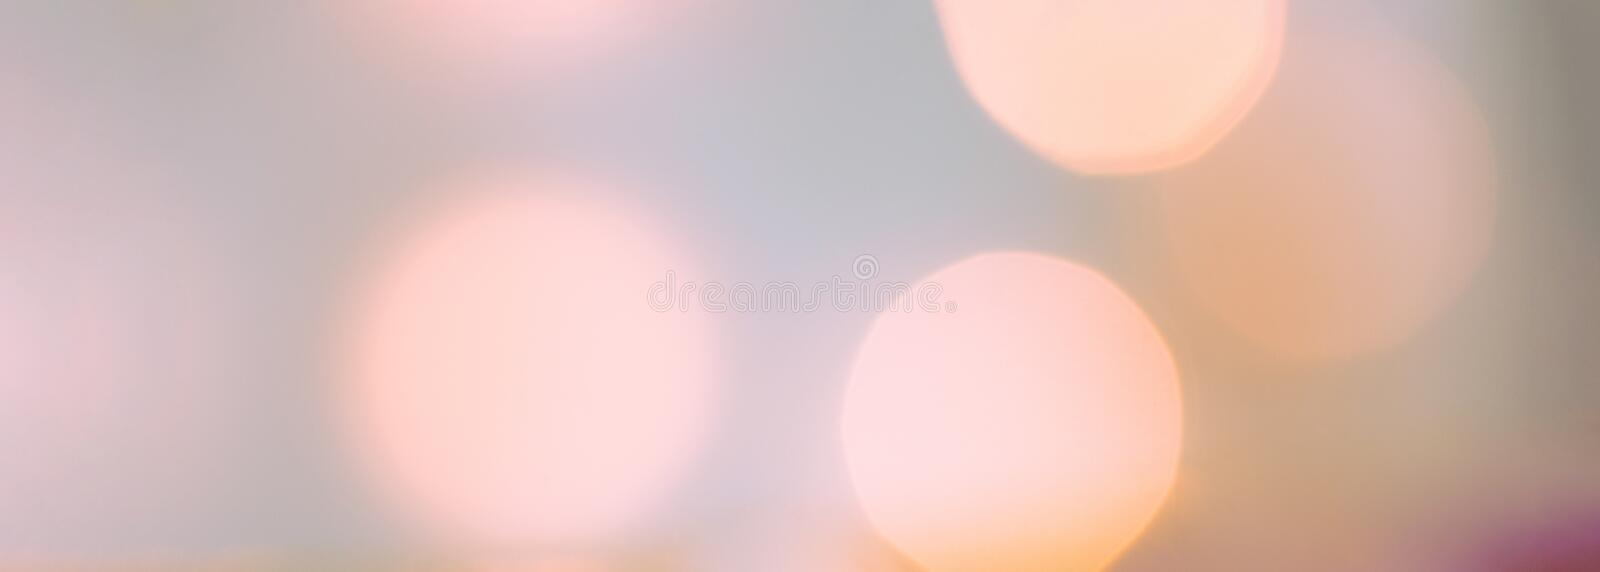 Beautiful elegant pastel multicolor color holiday background for Christmas New Year Birthday Valentine celebration royalty free stock photos